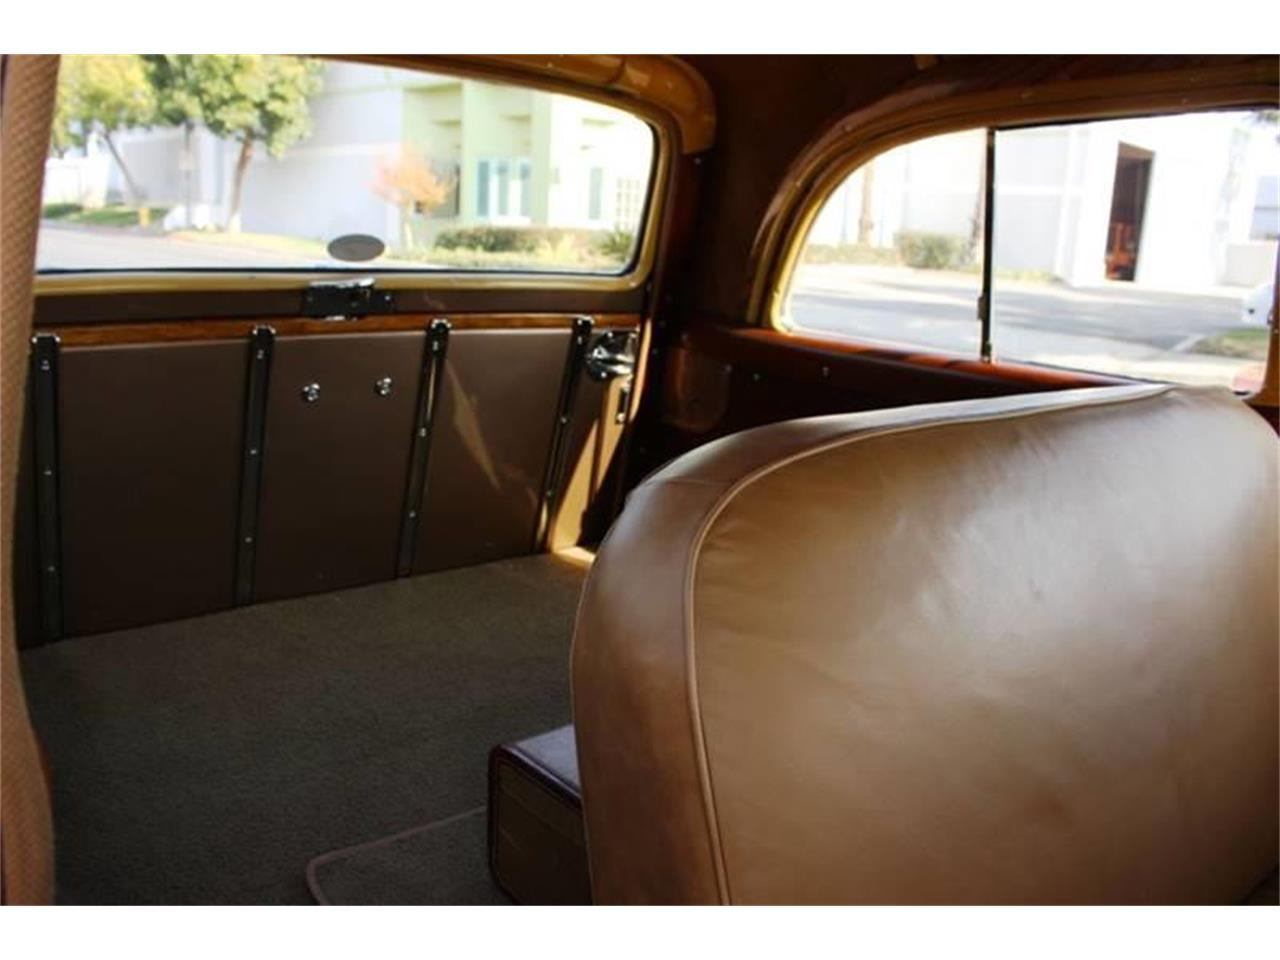 1950 Chevrolet Styleline Deluxe for sale in La Verne, CA – photo 41